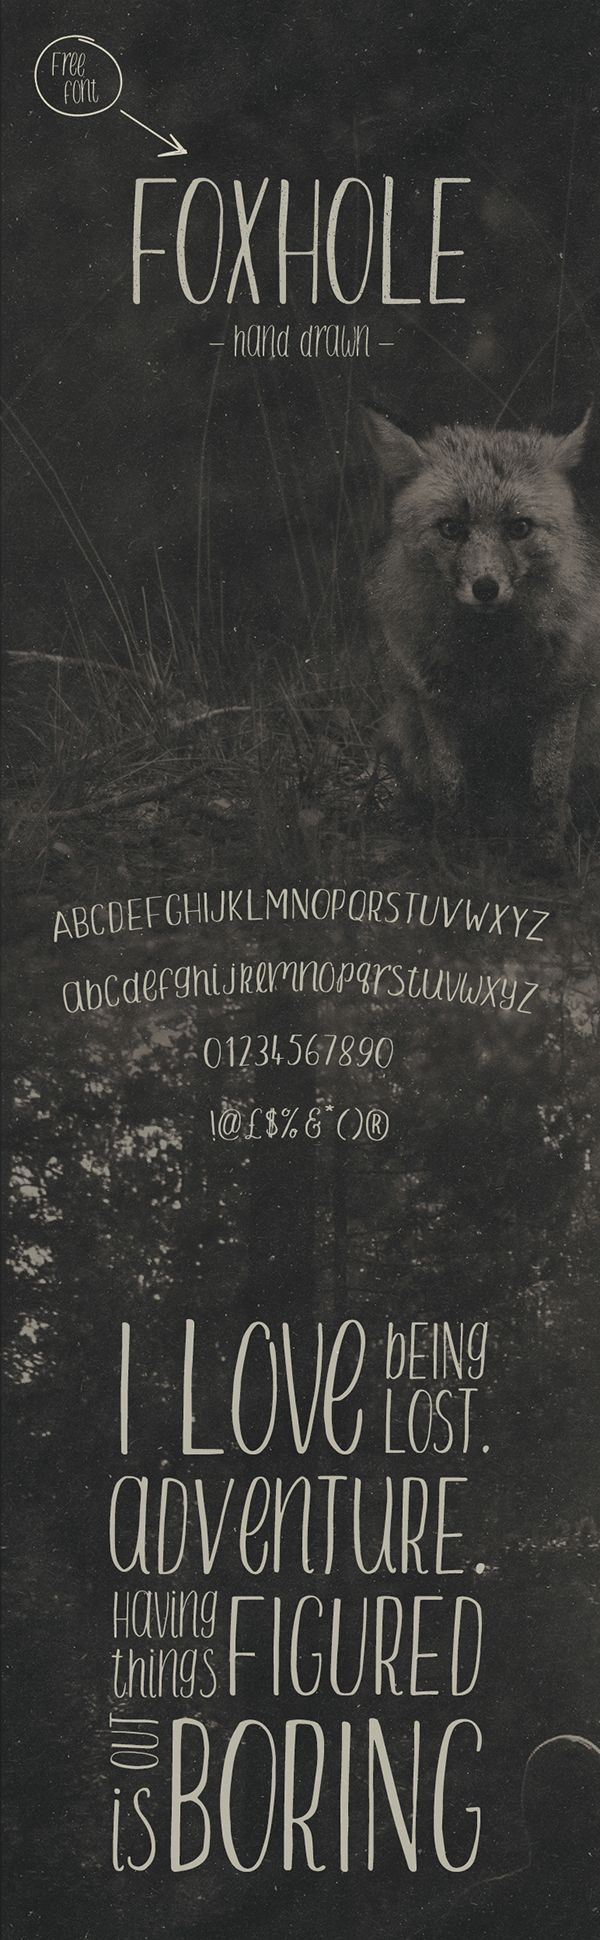 Foxhole, a free hand-drawn sans-serif font by Ian Barnard. Can be used for personal or commercial purposes. Download here!